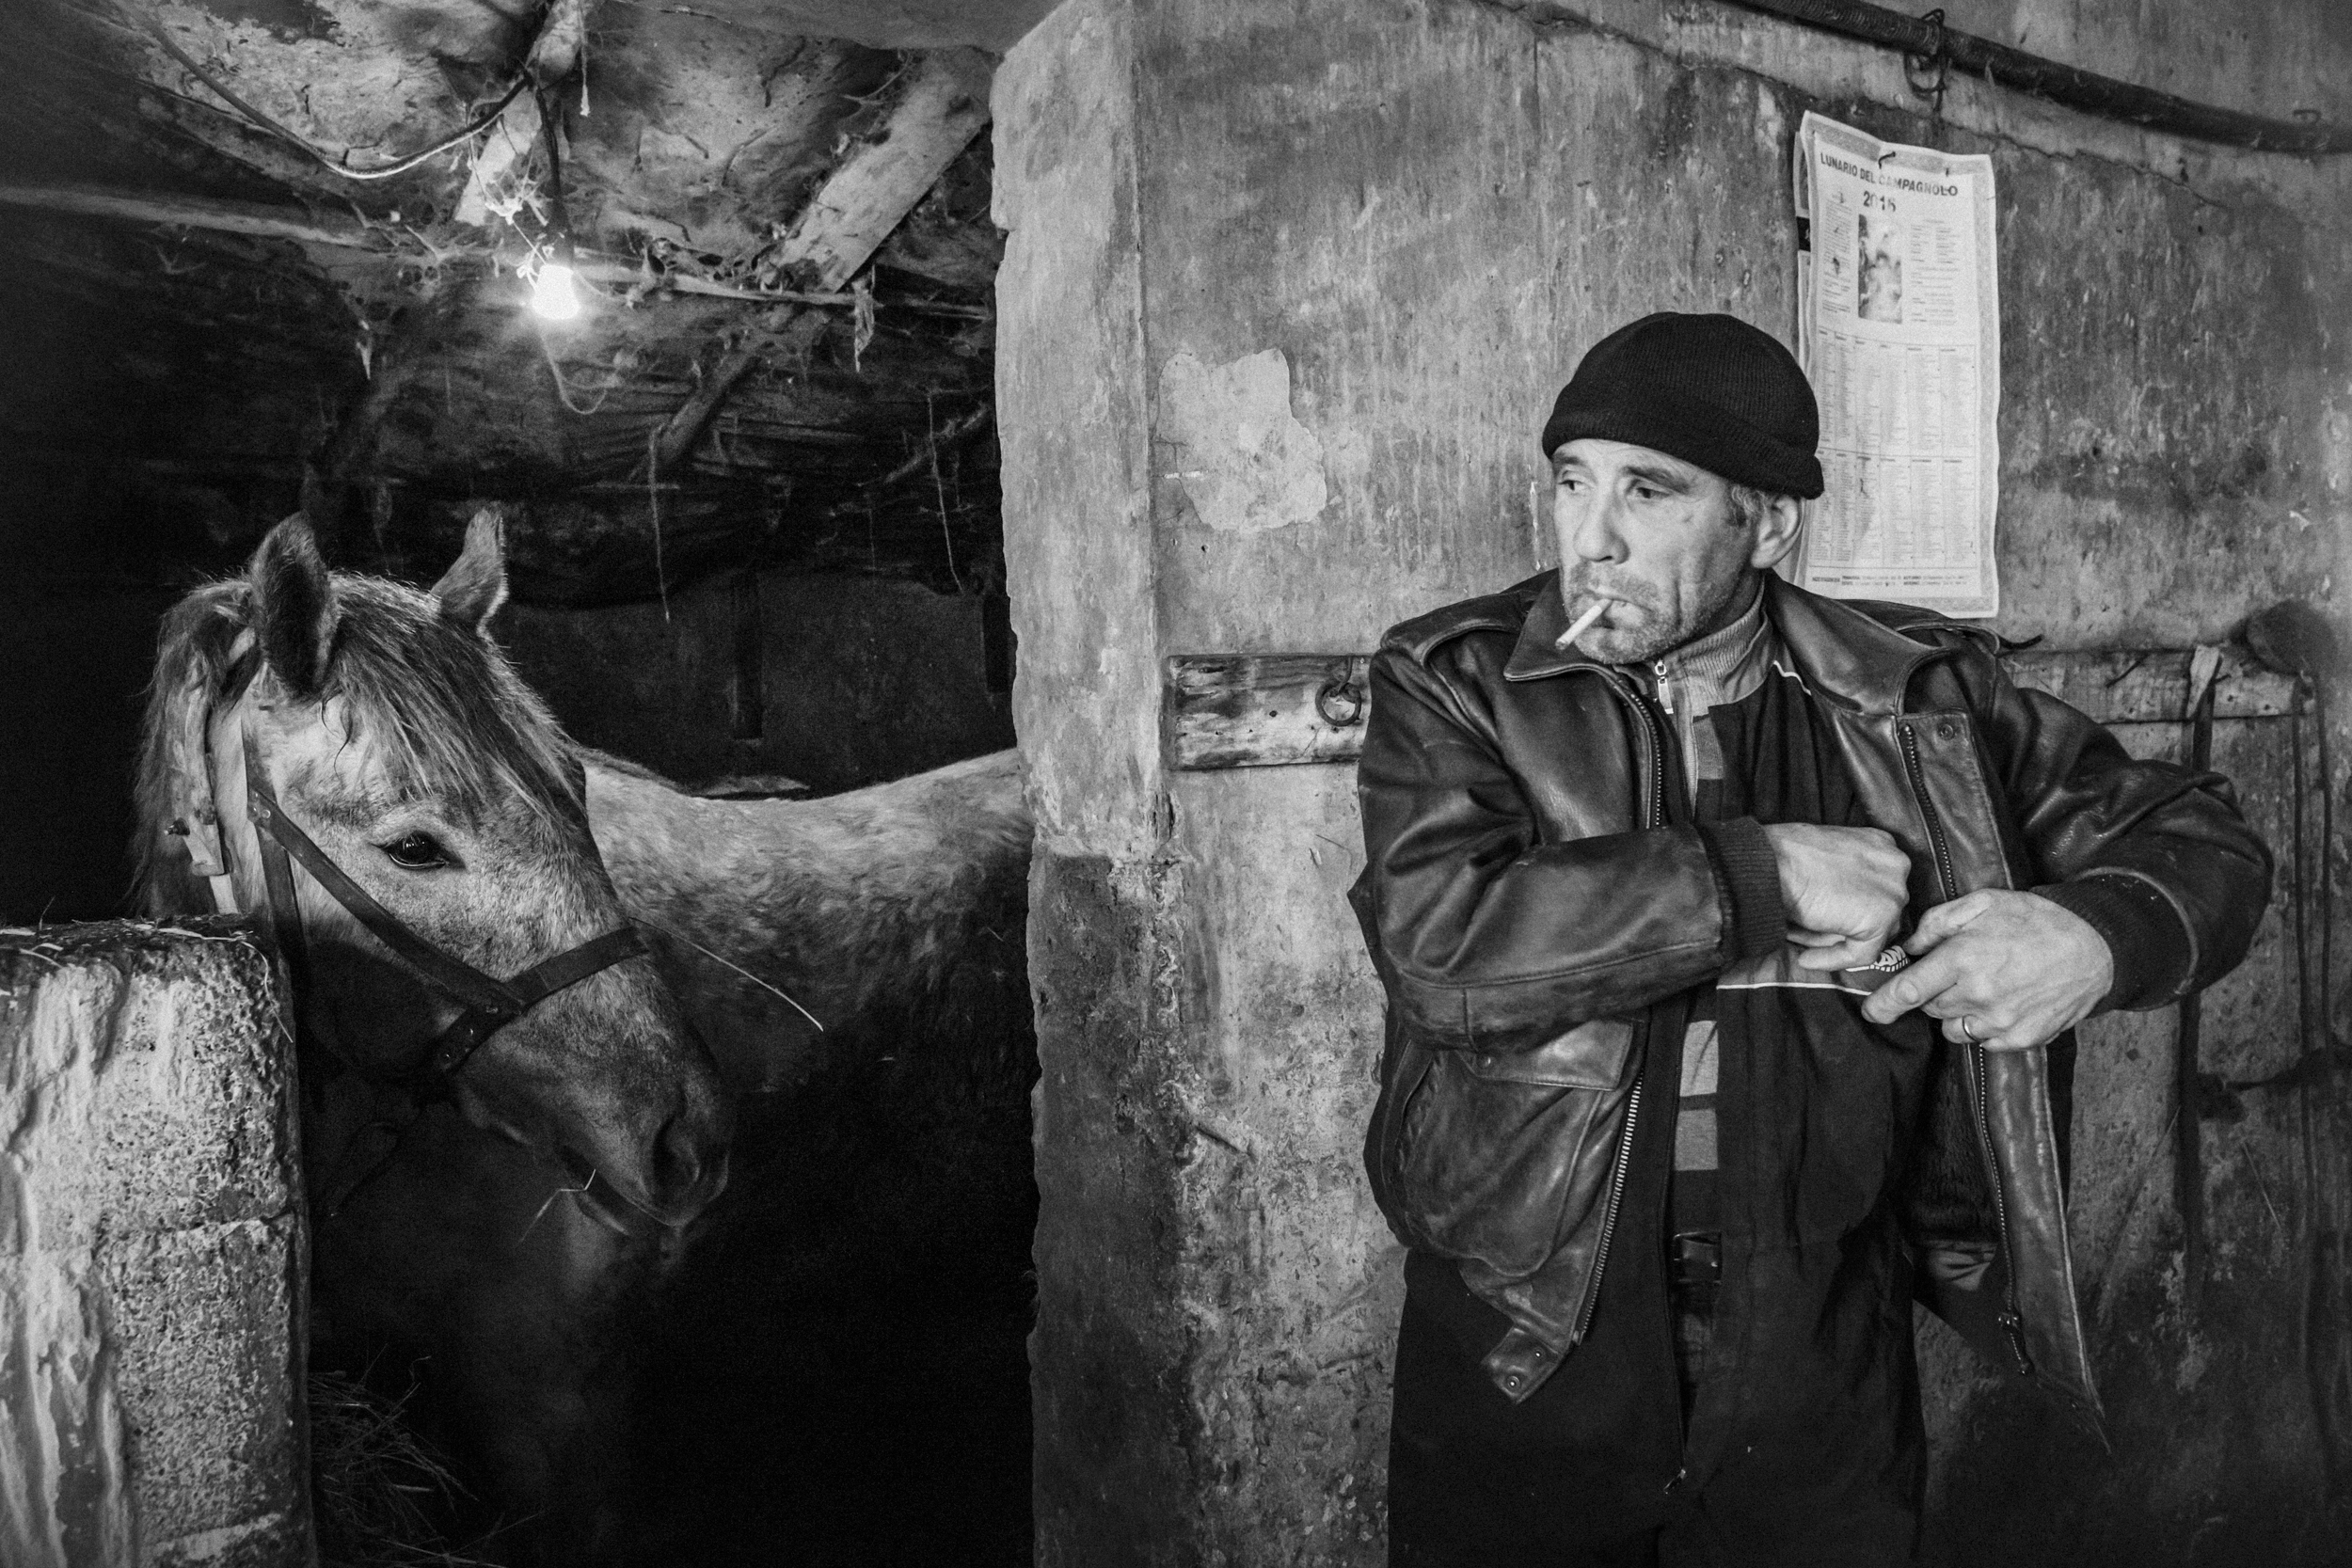 Capracotta (IS), Italy - February 2016. Giovanni Di Pietro, working as a street cleaner for the municipality of Agnone, in the family stable with his horse.